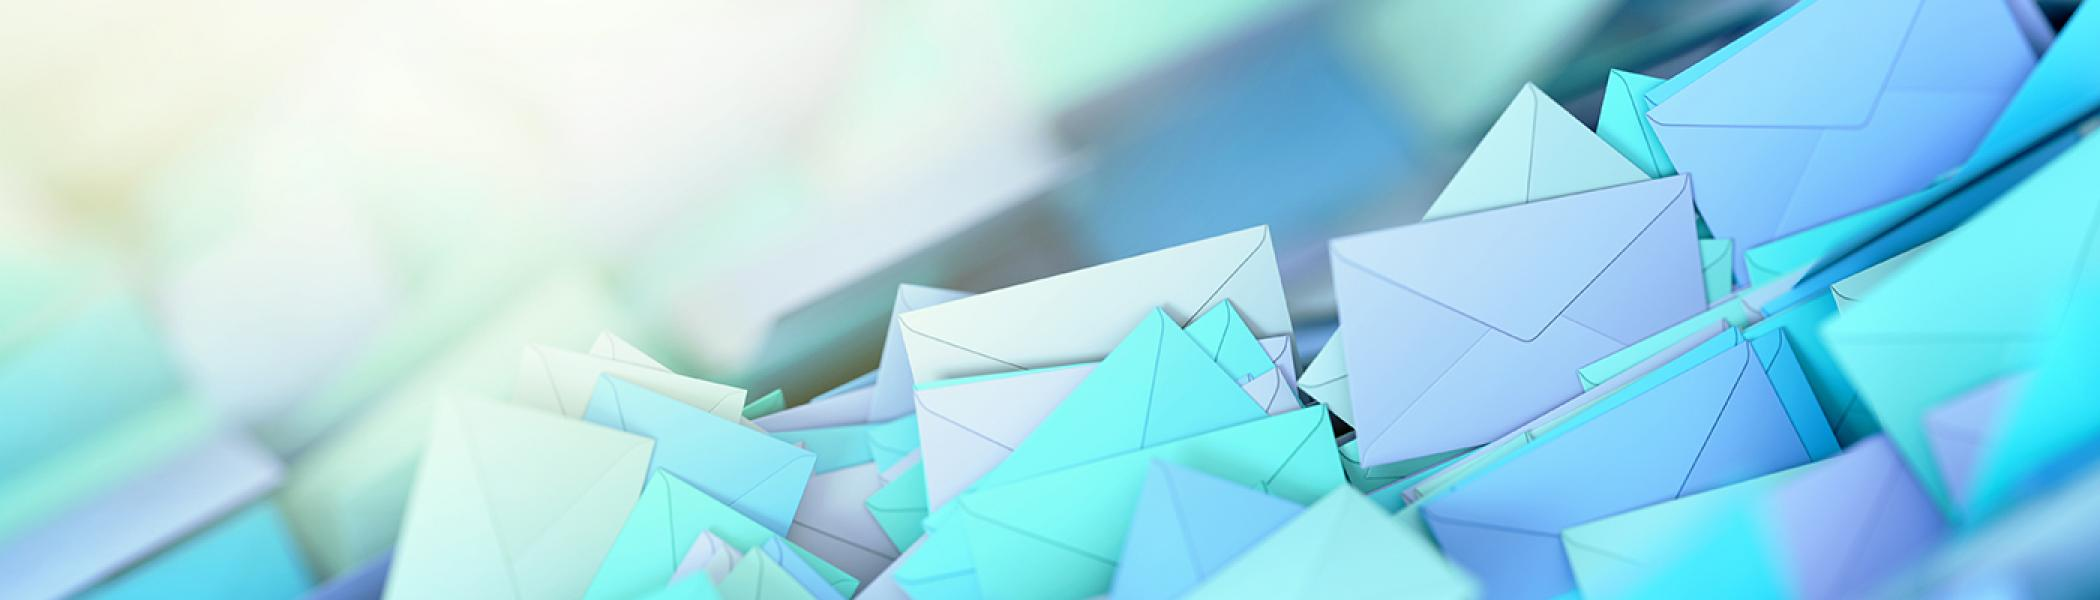 Many animated envelopes